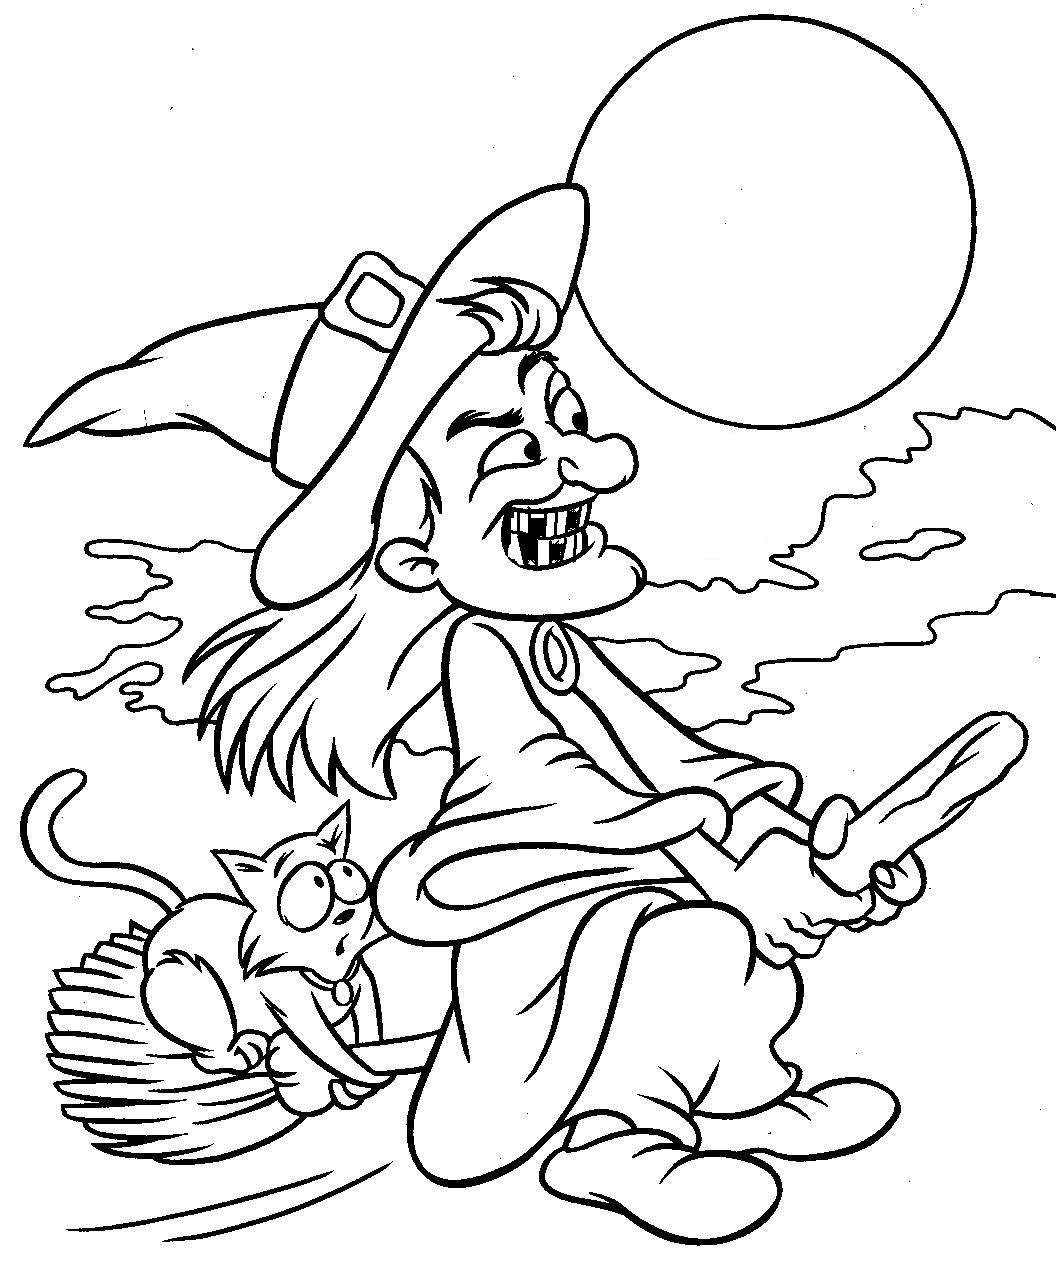 haloween coloring pages disney toy story hamm halloween coloring pages haloween pages coloring